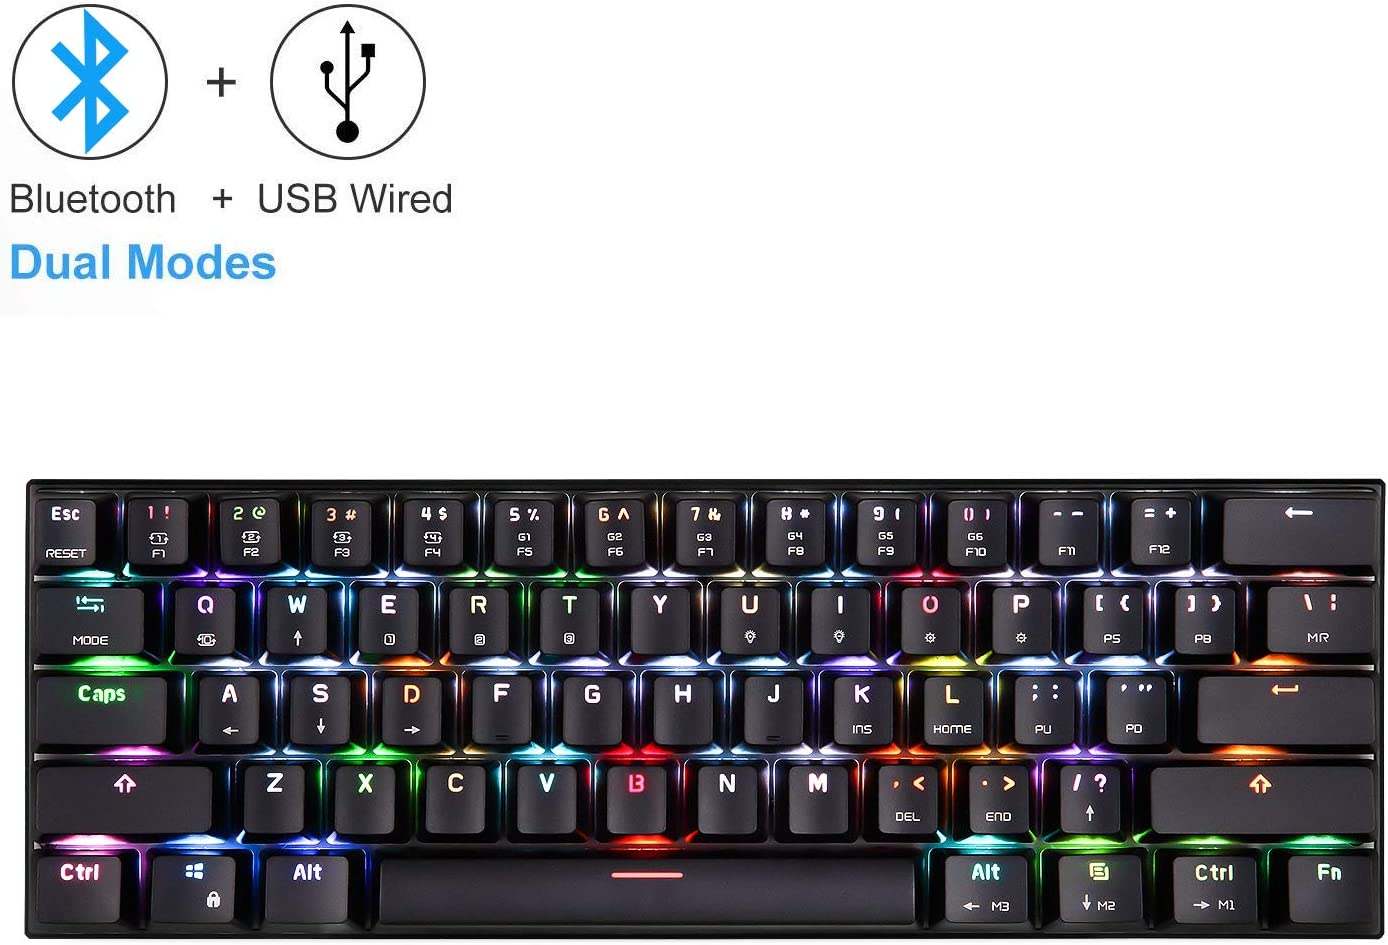 60% Bluetooth Mechanical Gaming Keyboard, RGB Backlit Bluetooth Wired/Wireless LED Computer MAC Keyboard Blue Switches 100% Anti-Ghosting Keyboard for Multi-Device Phone Android Mobile PC Laptop